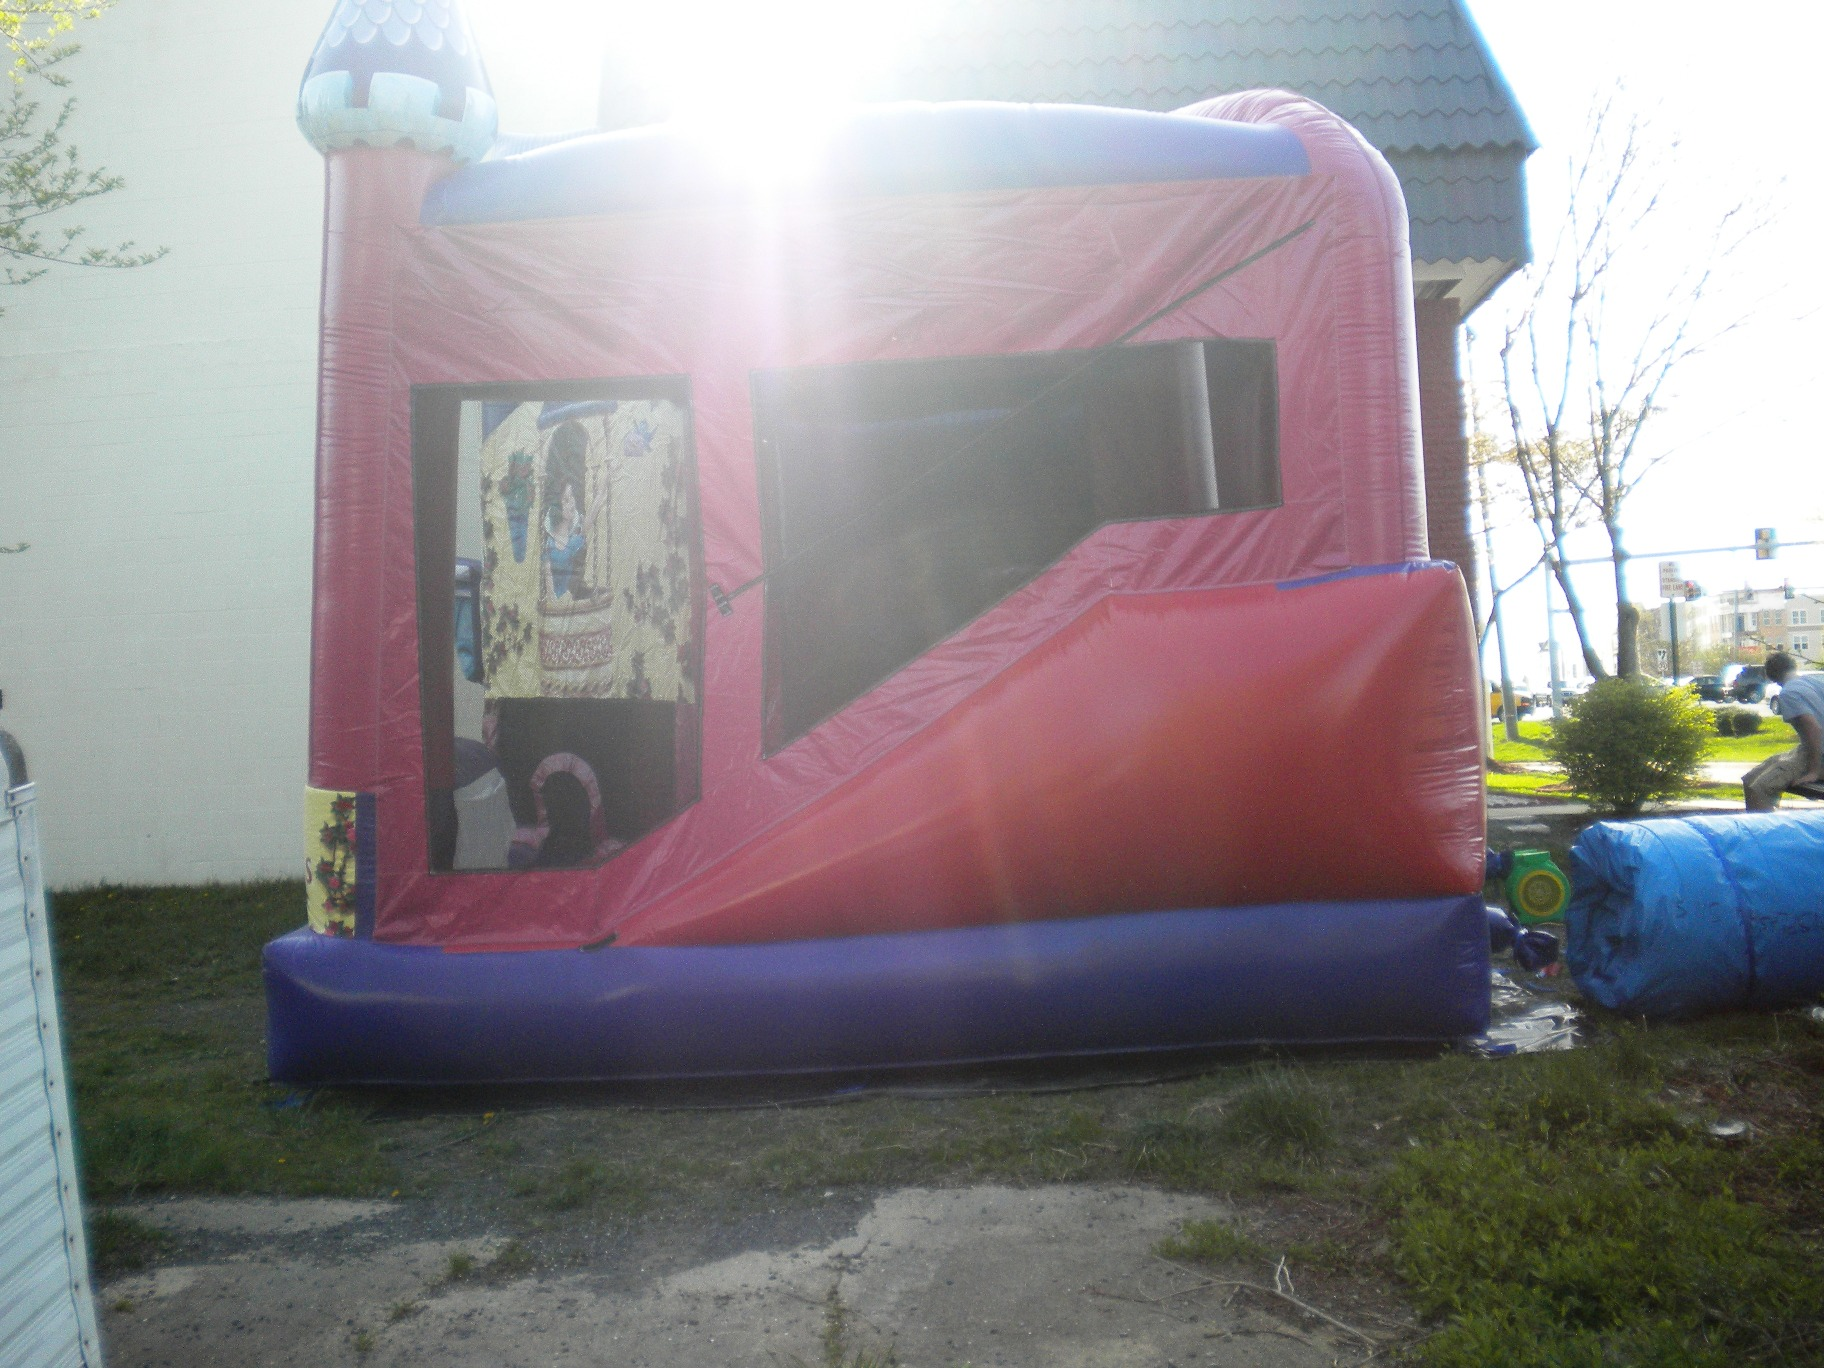 Disney Princess Combo Jumper Moonbouce Bounce House Right Side View